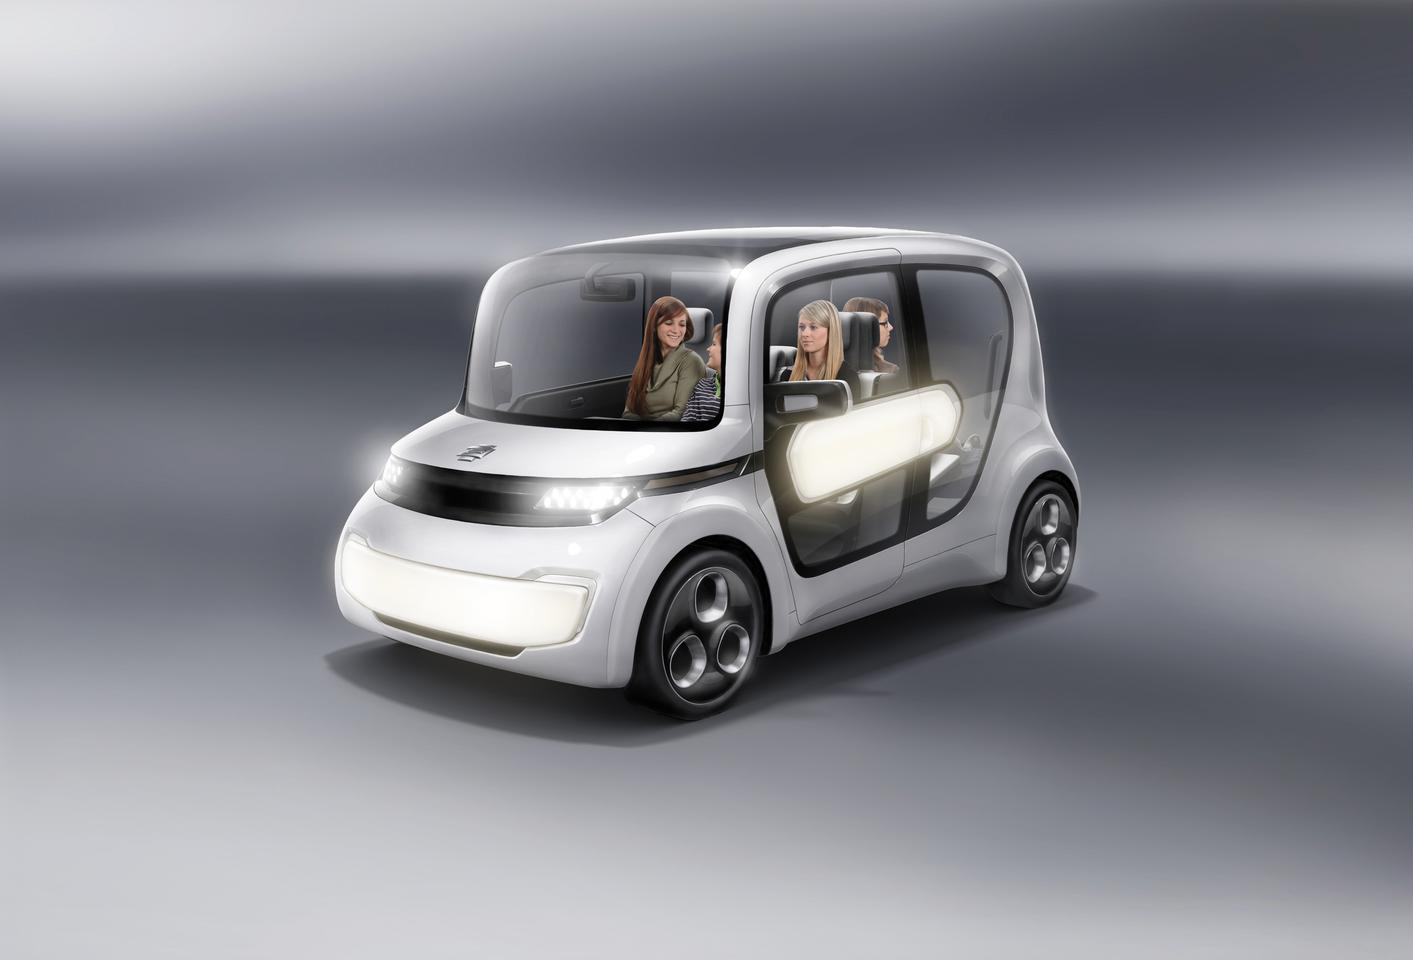 At Geneva this year, EDAG unveiled the third member of what's fast becoming its all-electric Light Car range: the EDAG Light Car - Sharing (let's call it the LC-S for short)